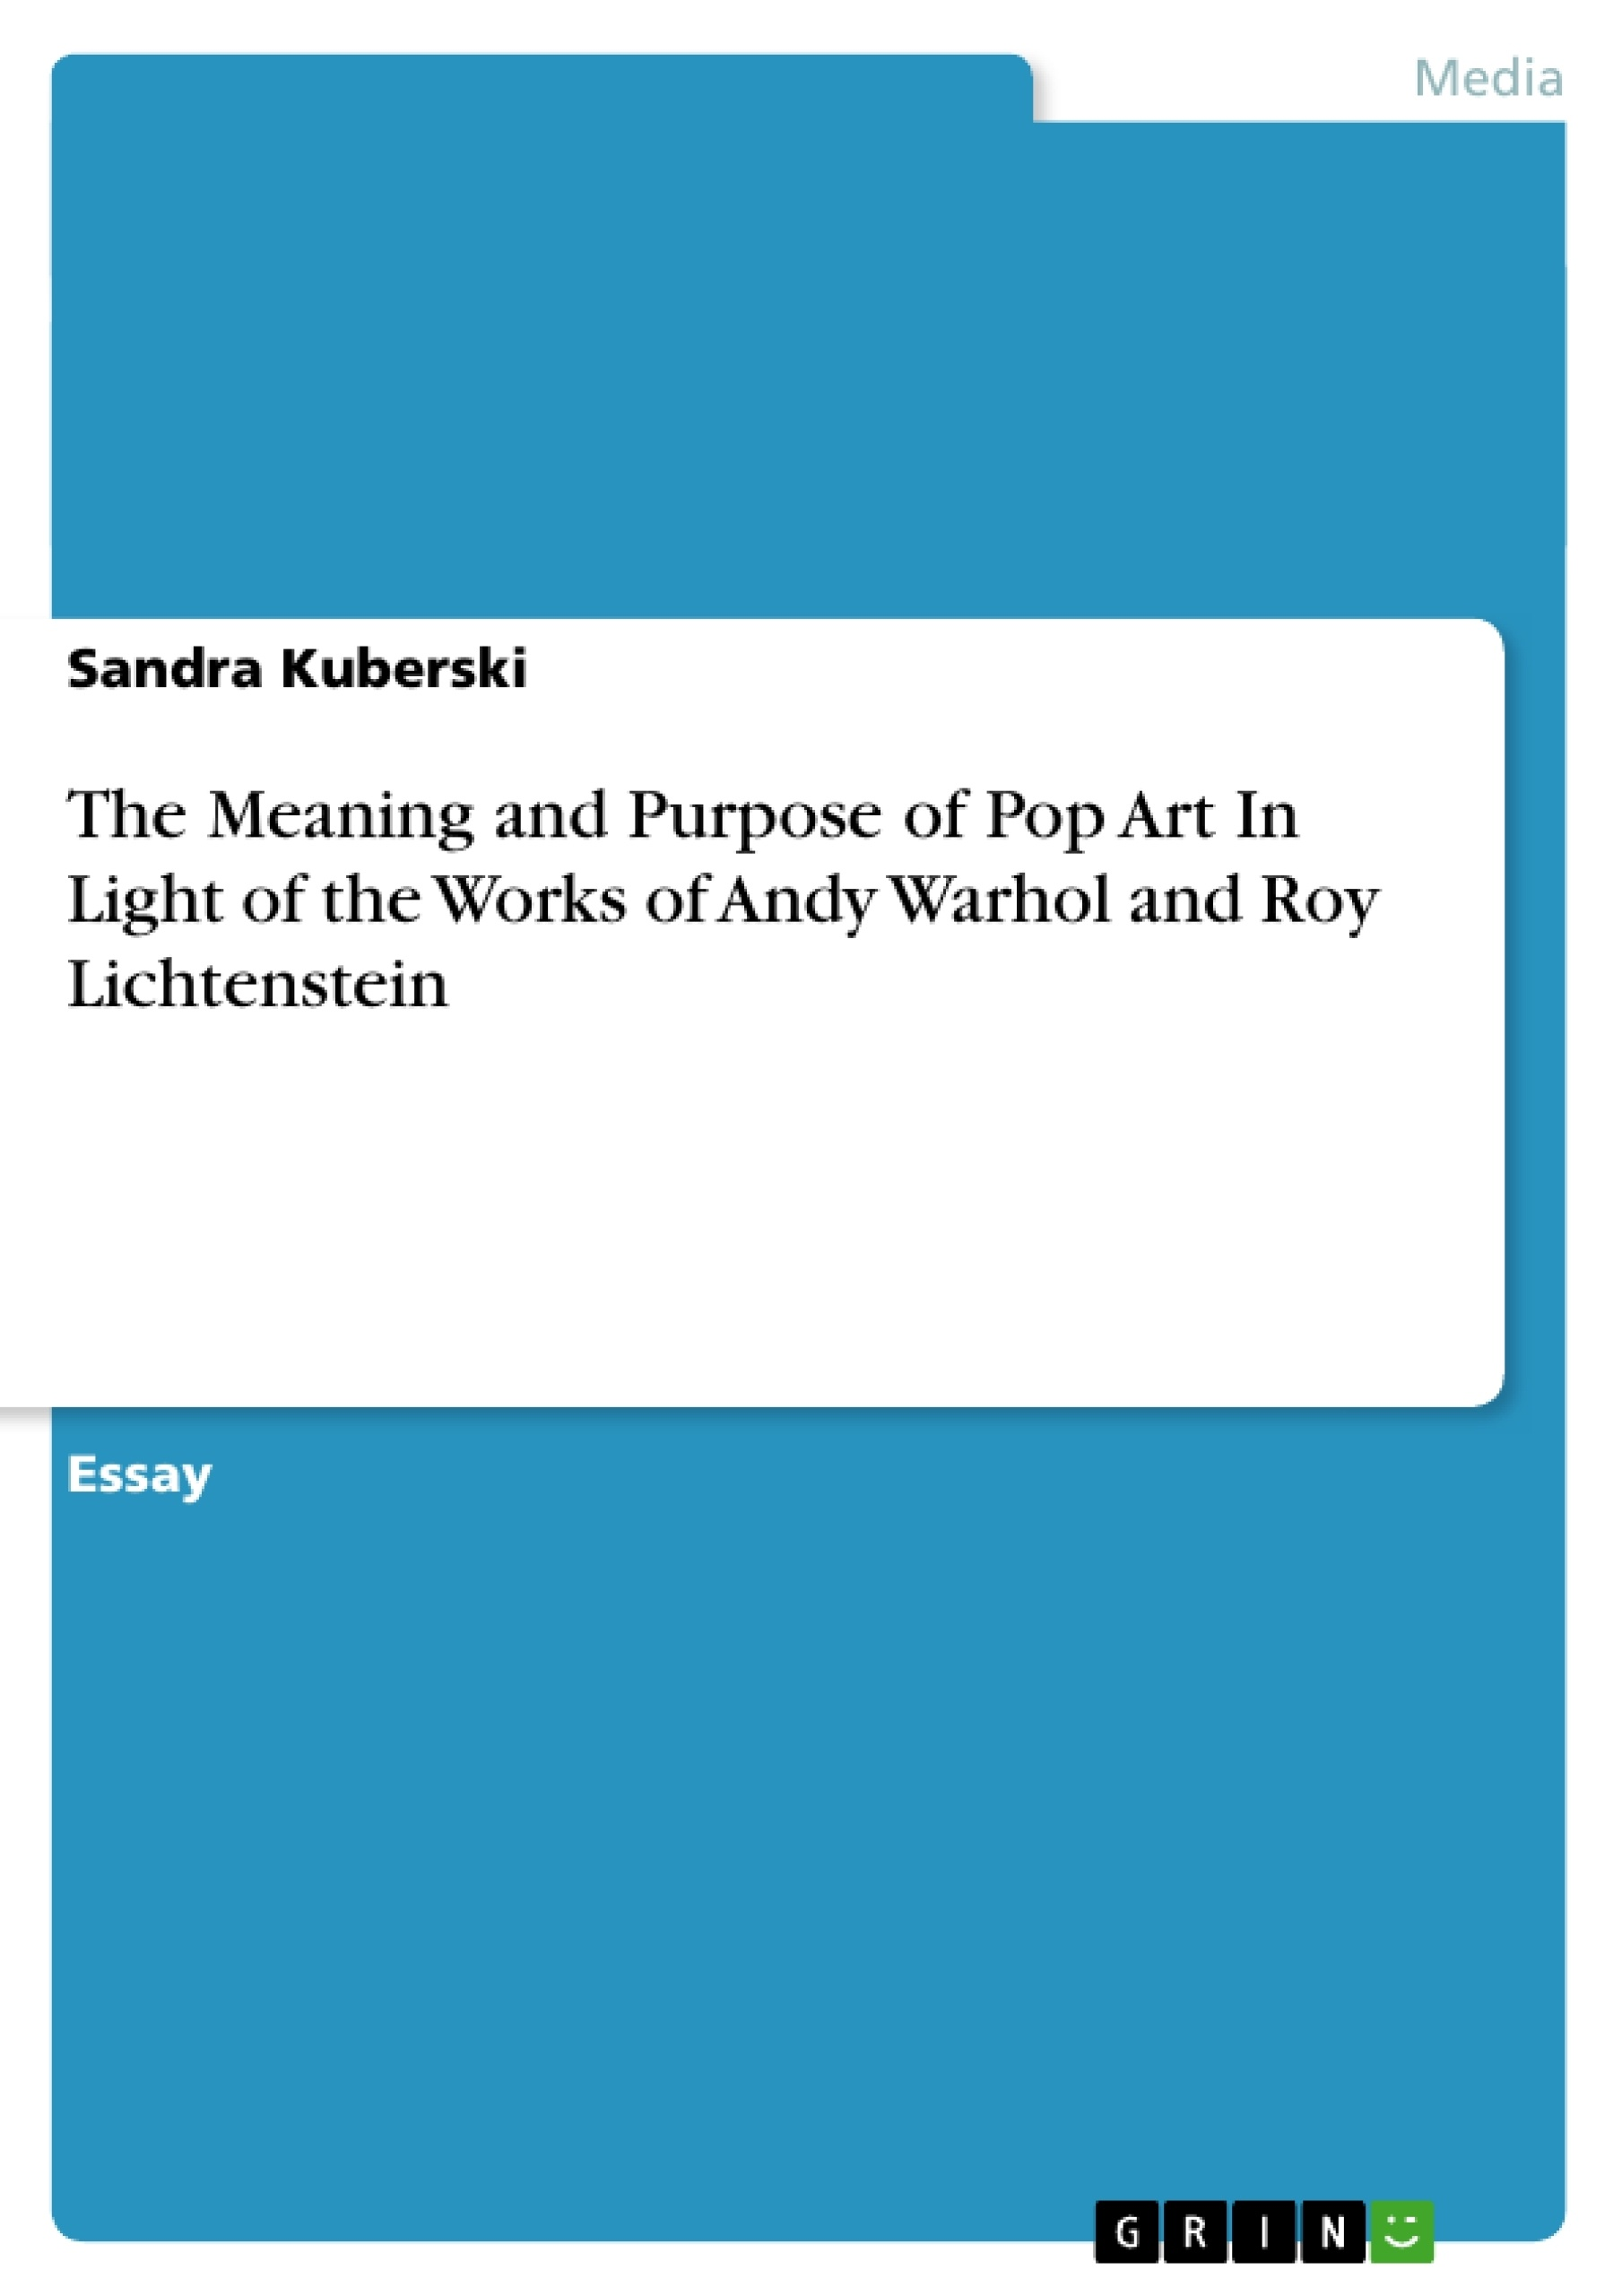 Title: The Meaning and Purpose of Pop Art In Light of the Works of Andy Warhol and Roy Lichtenstein